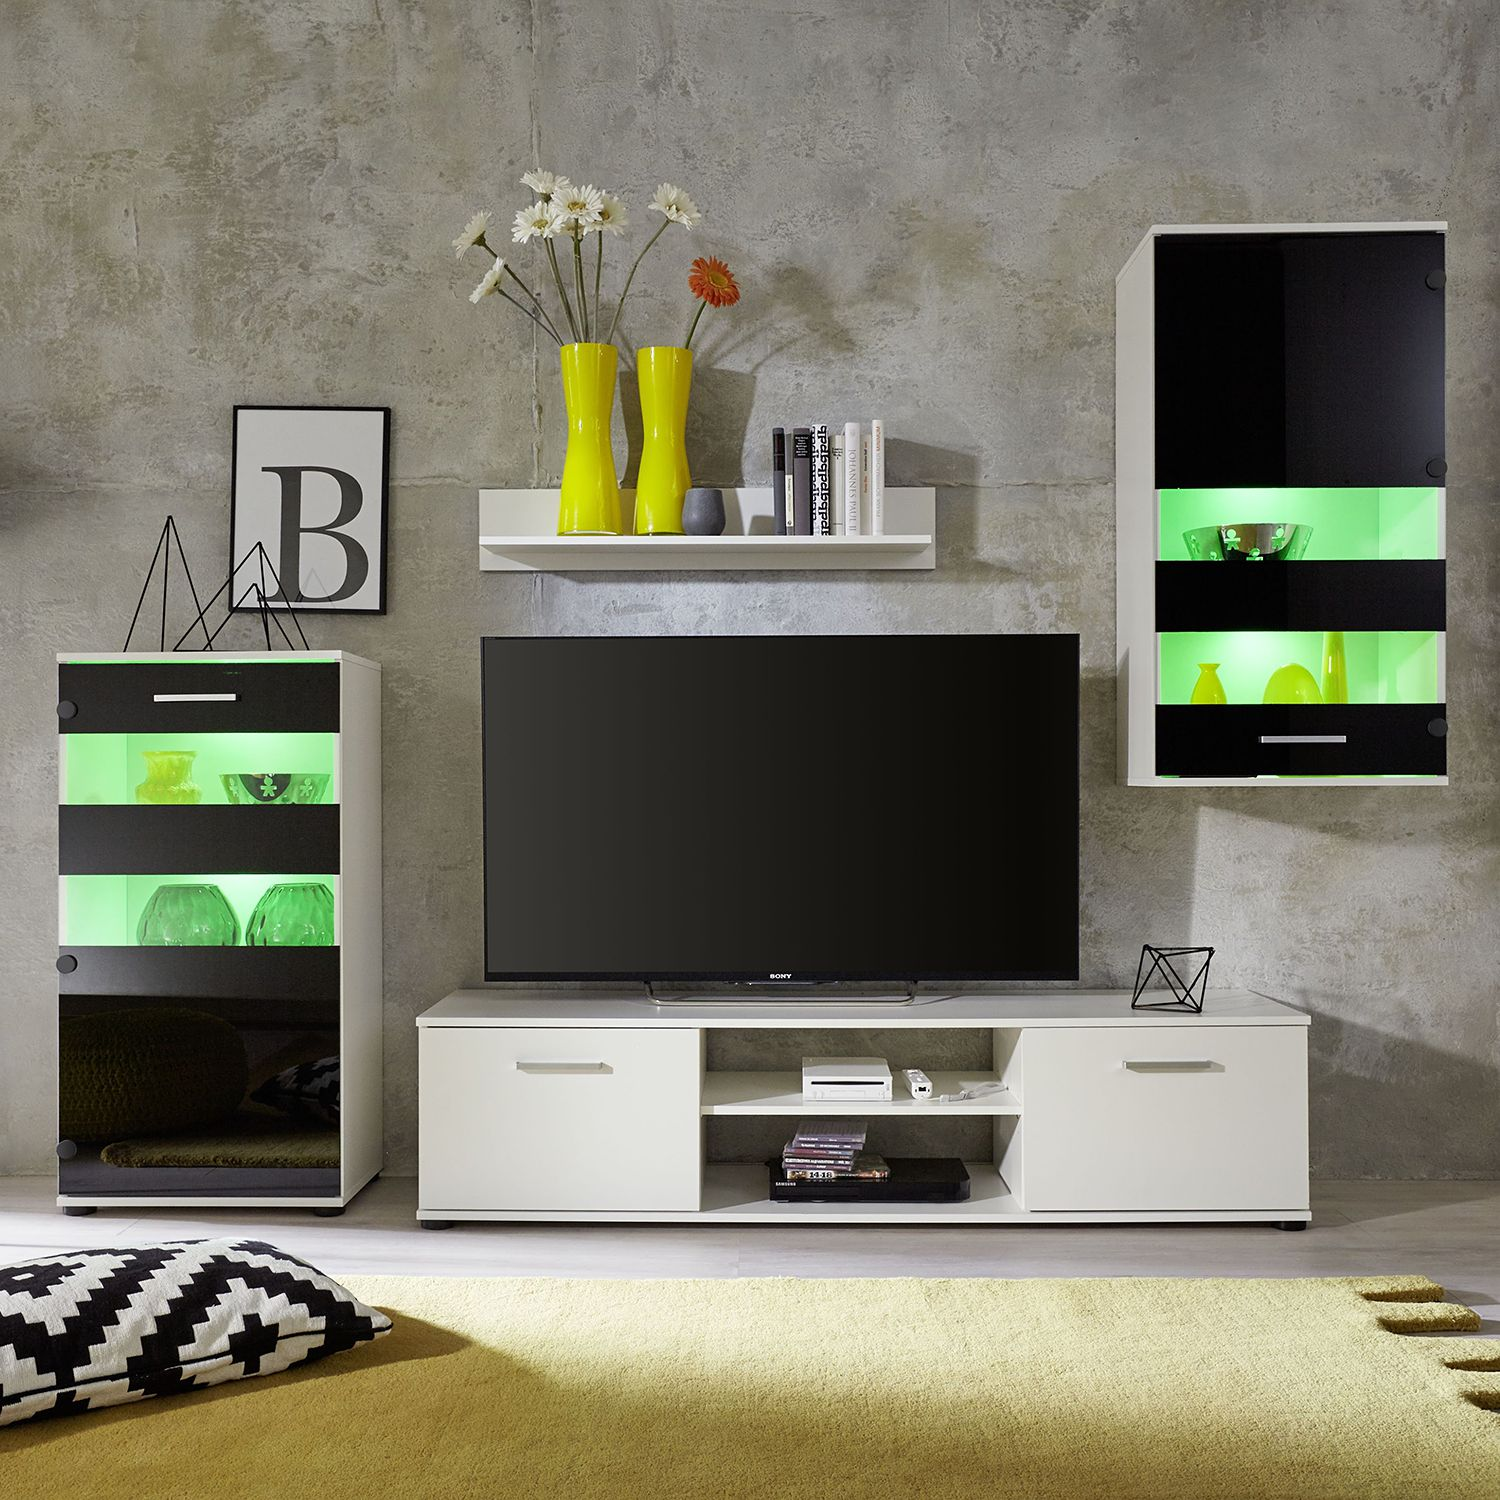 wohnwand schwarz wei preisvergleich die besten angebote online kaufen. Black Bedroom Furniture Sets. Home Design Ideas